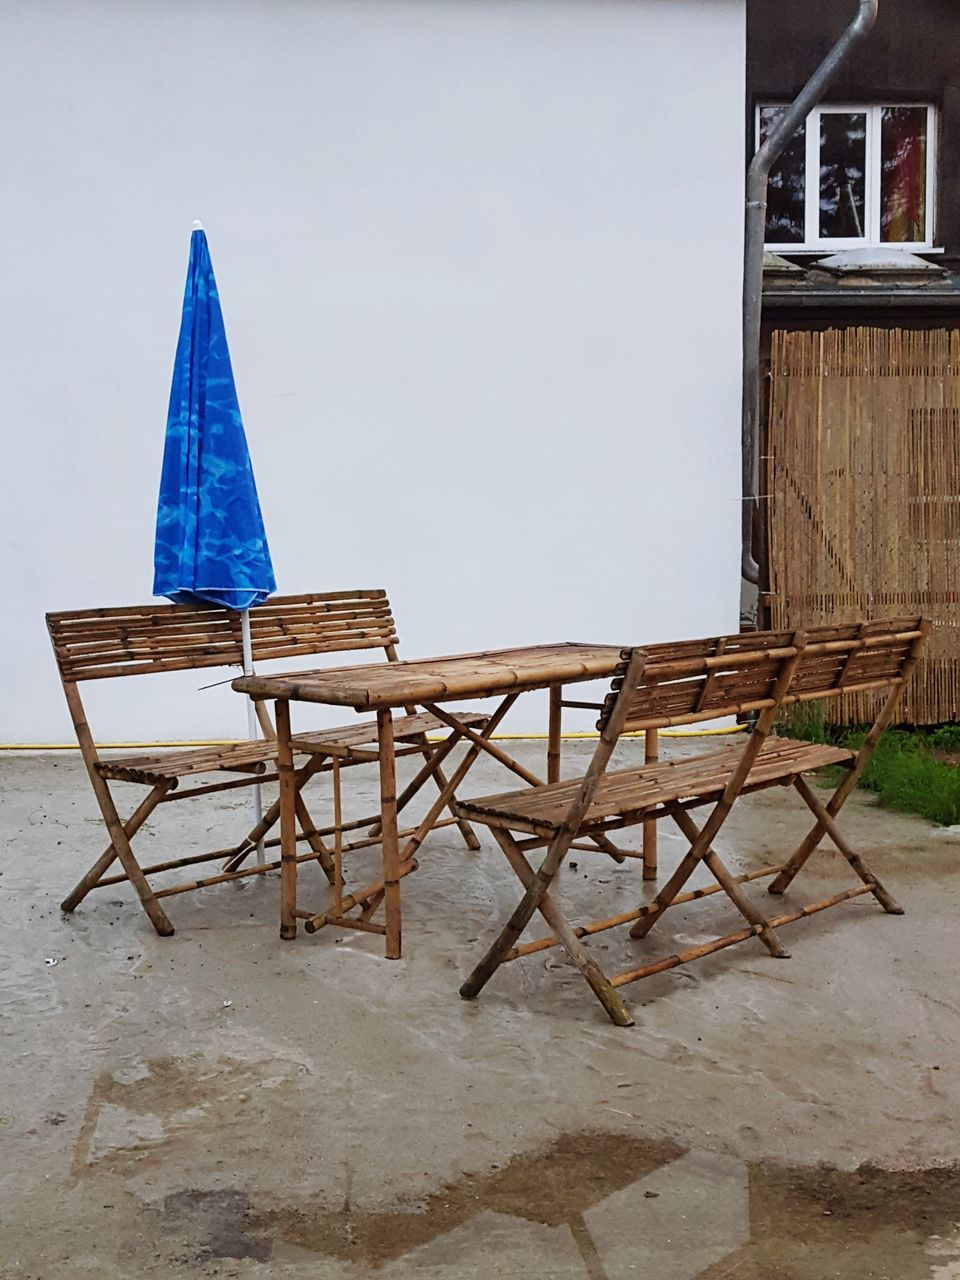 wood - material, built structure, no people, day, chair, outdoors, building exterior, sea, architecture, water, nature, sky